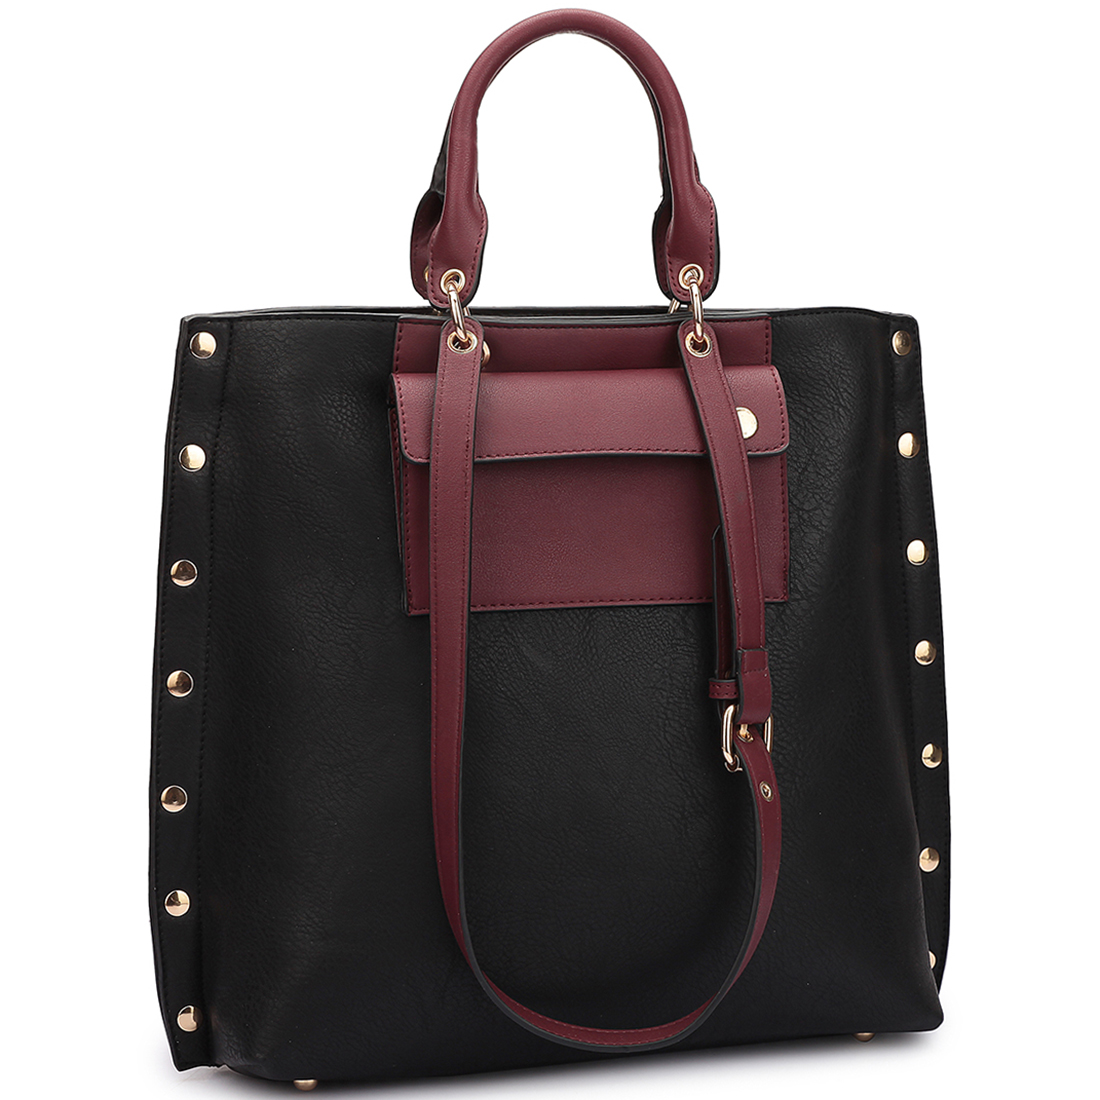 Dasein Tote with front pocket and side gold snap accents